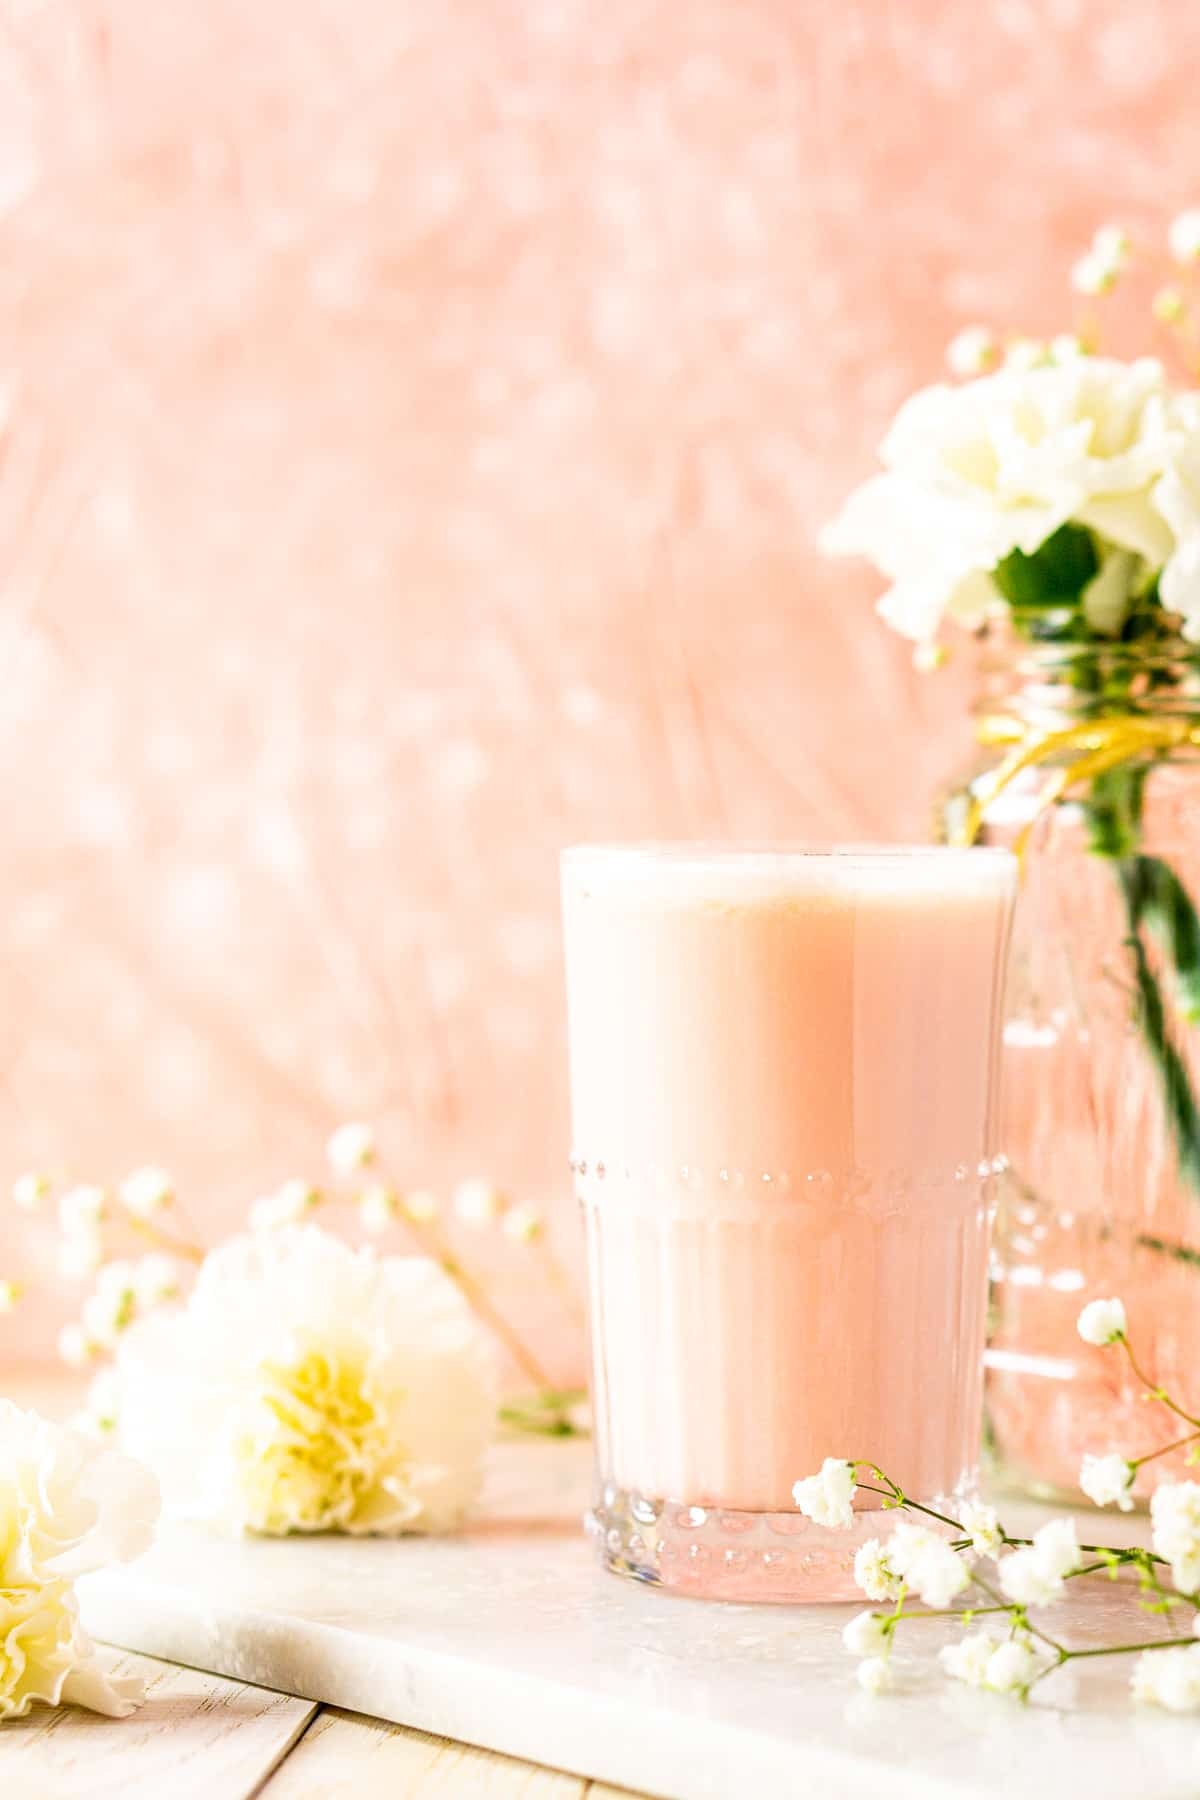 Looking straight on to the blood orange gin fizz with white flowers and a pink background.